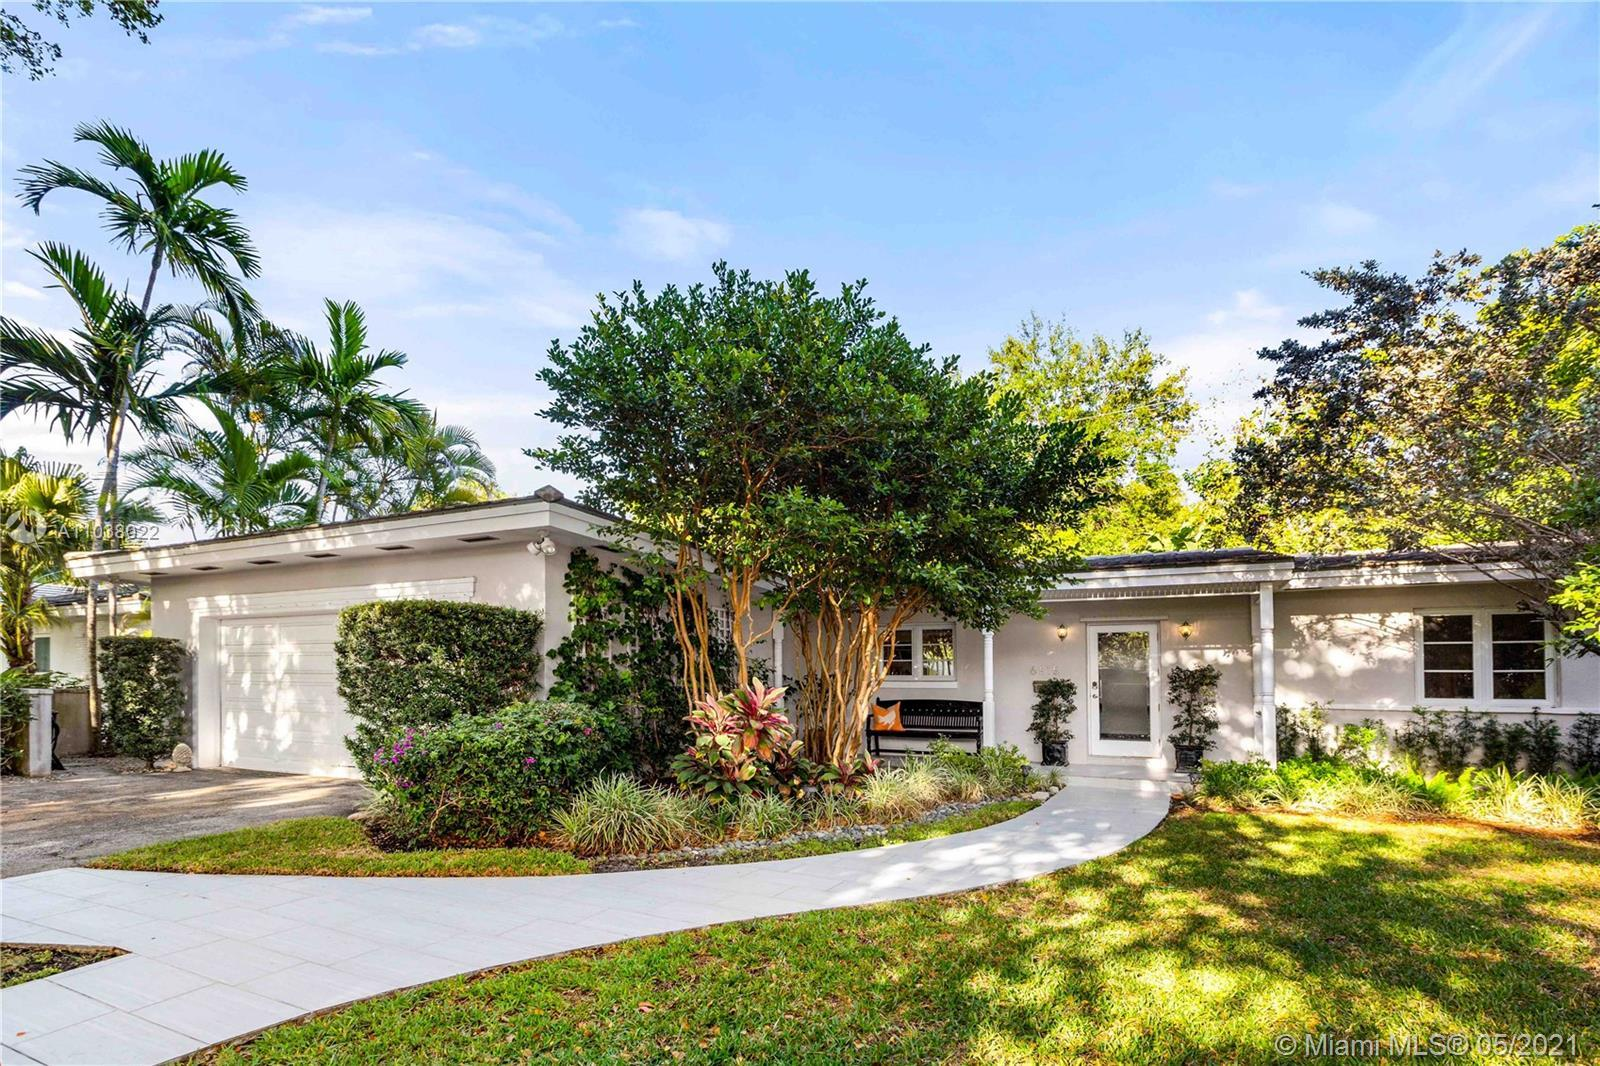 South Gables home in Sunset School district, one of the most sought after neighborhood. Great layout